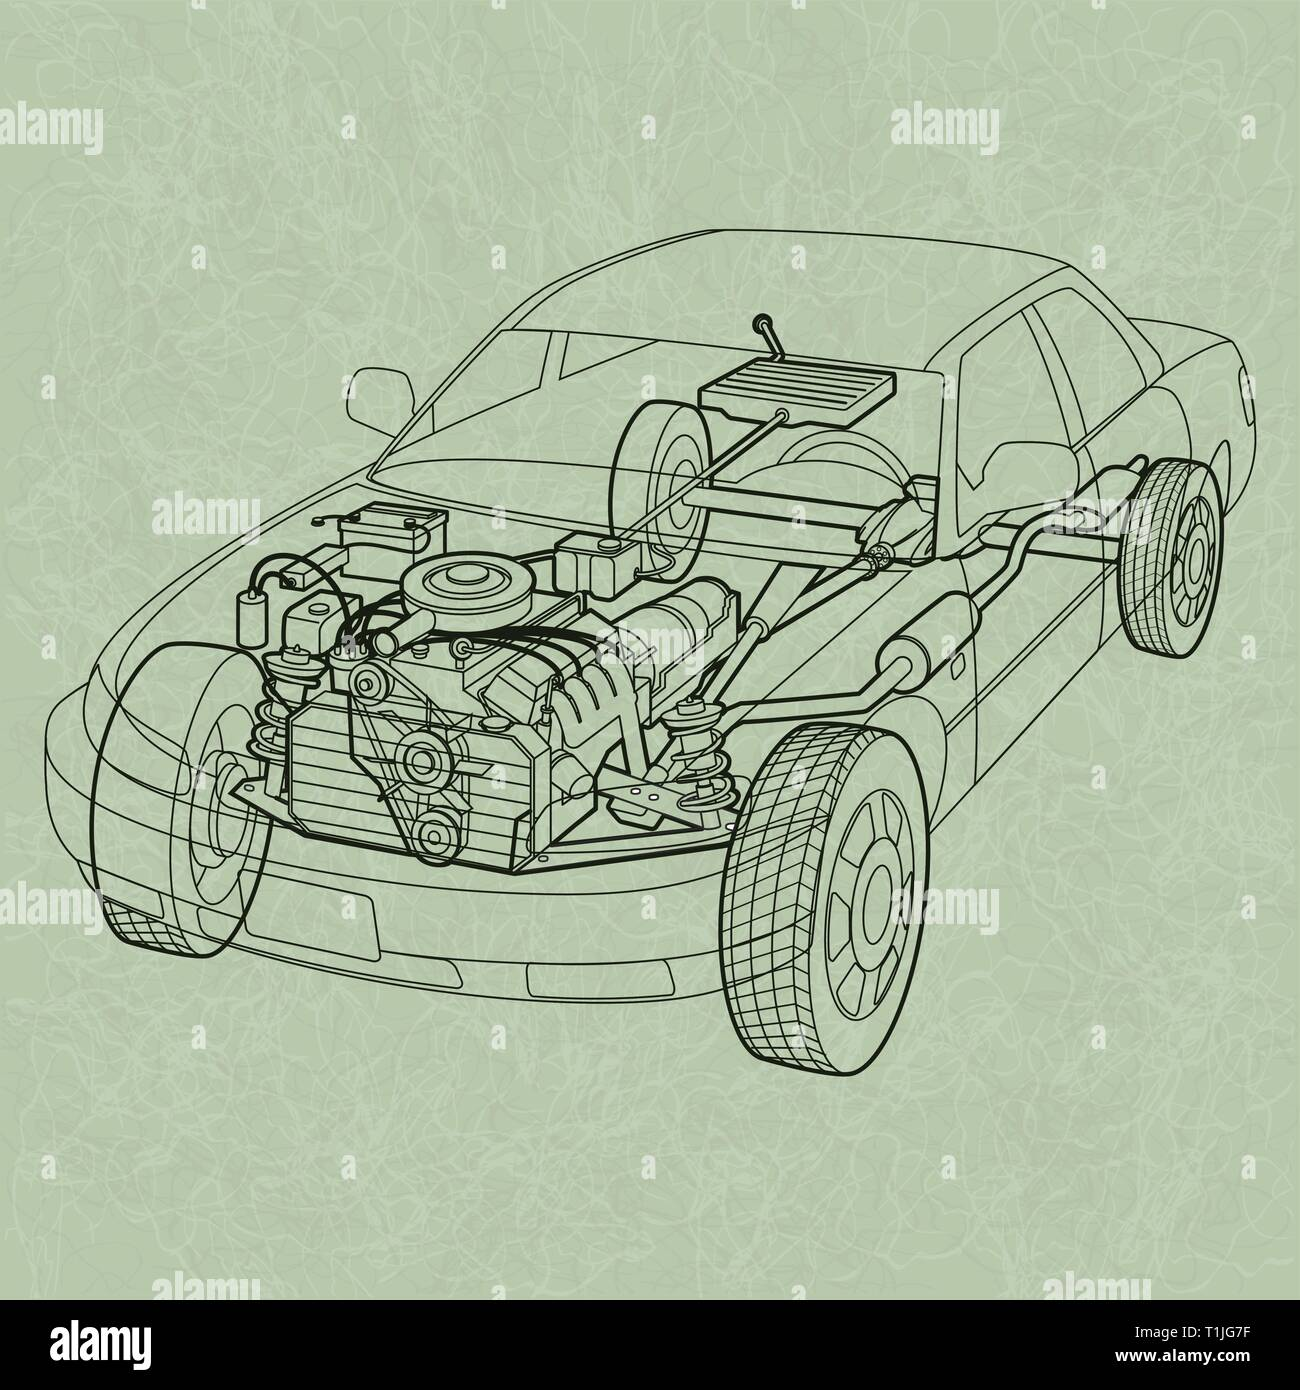 hight resolution of generic car diagram a ghosting or cross section of a car showing the engine